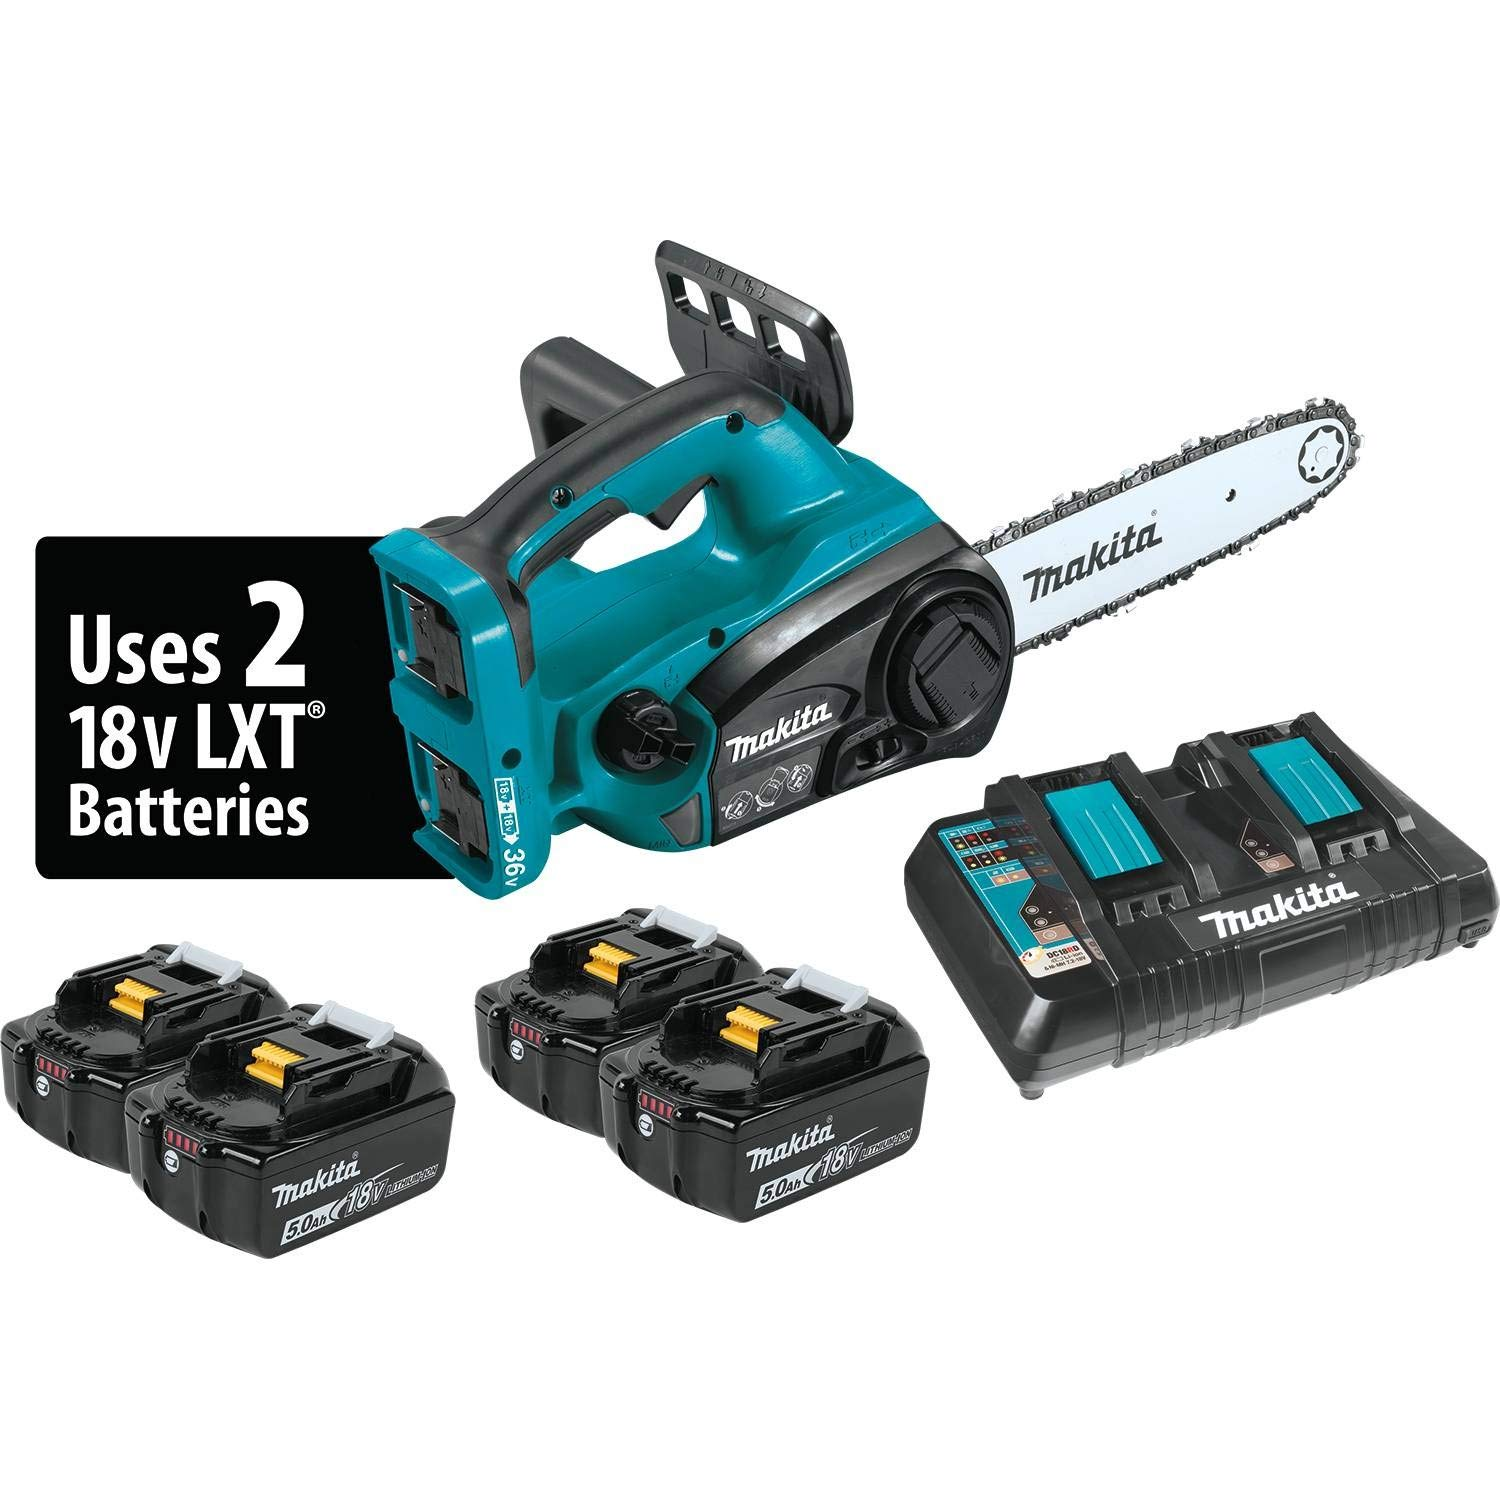 Makita XCU02PT1 featured image 1